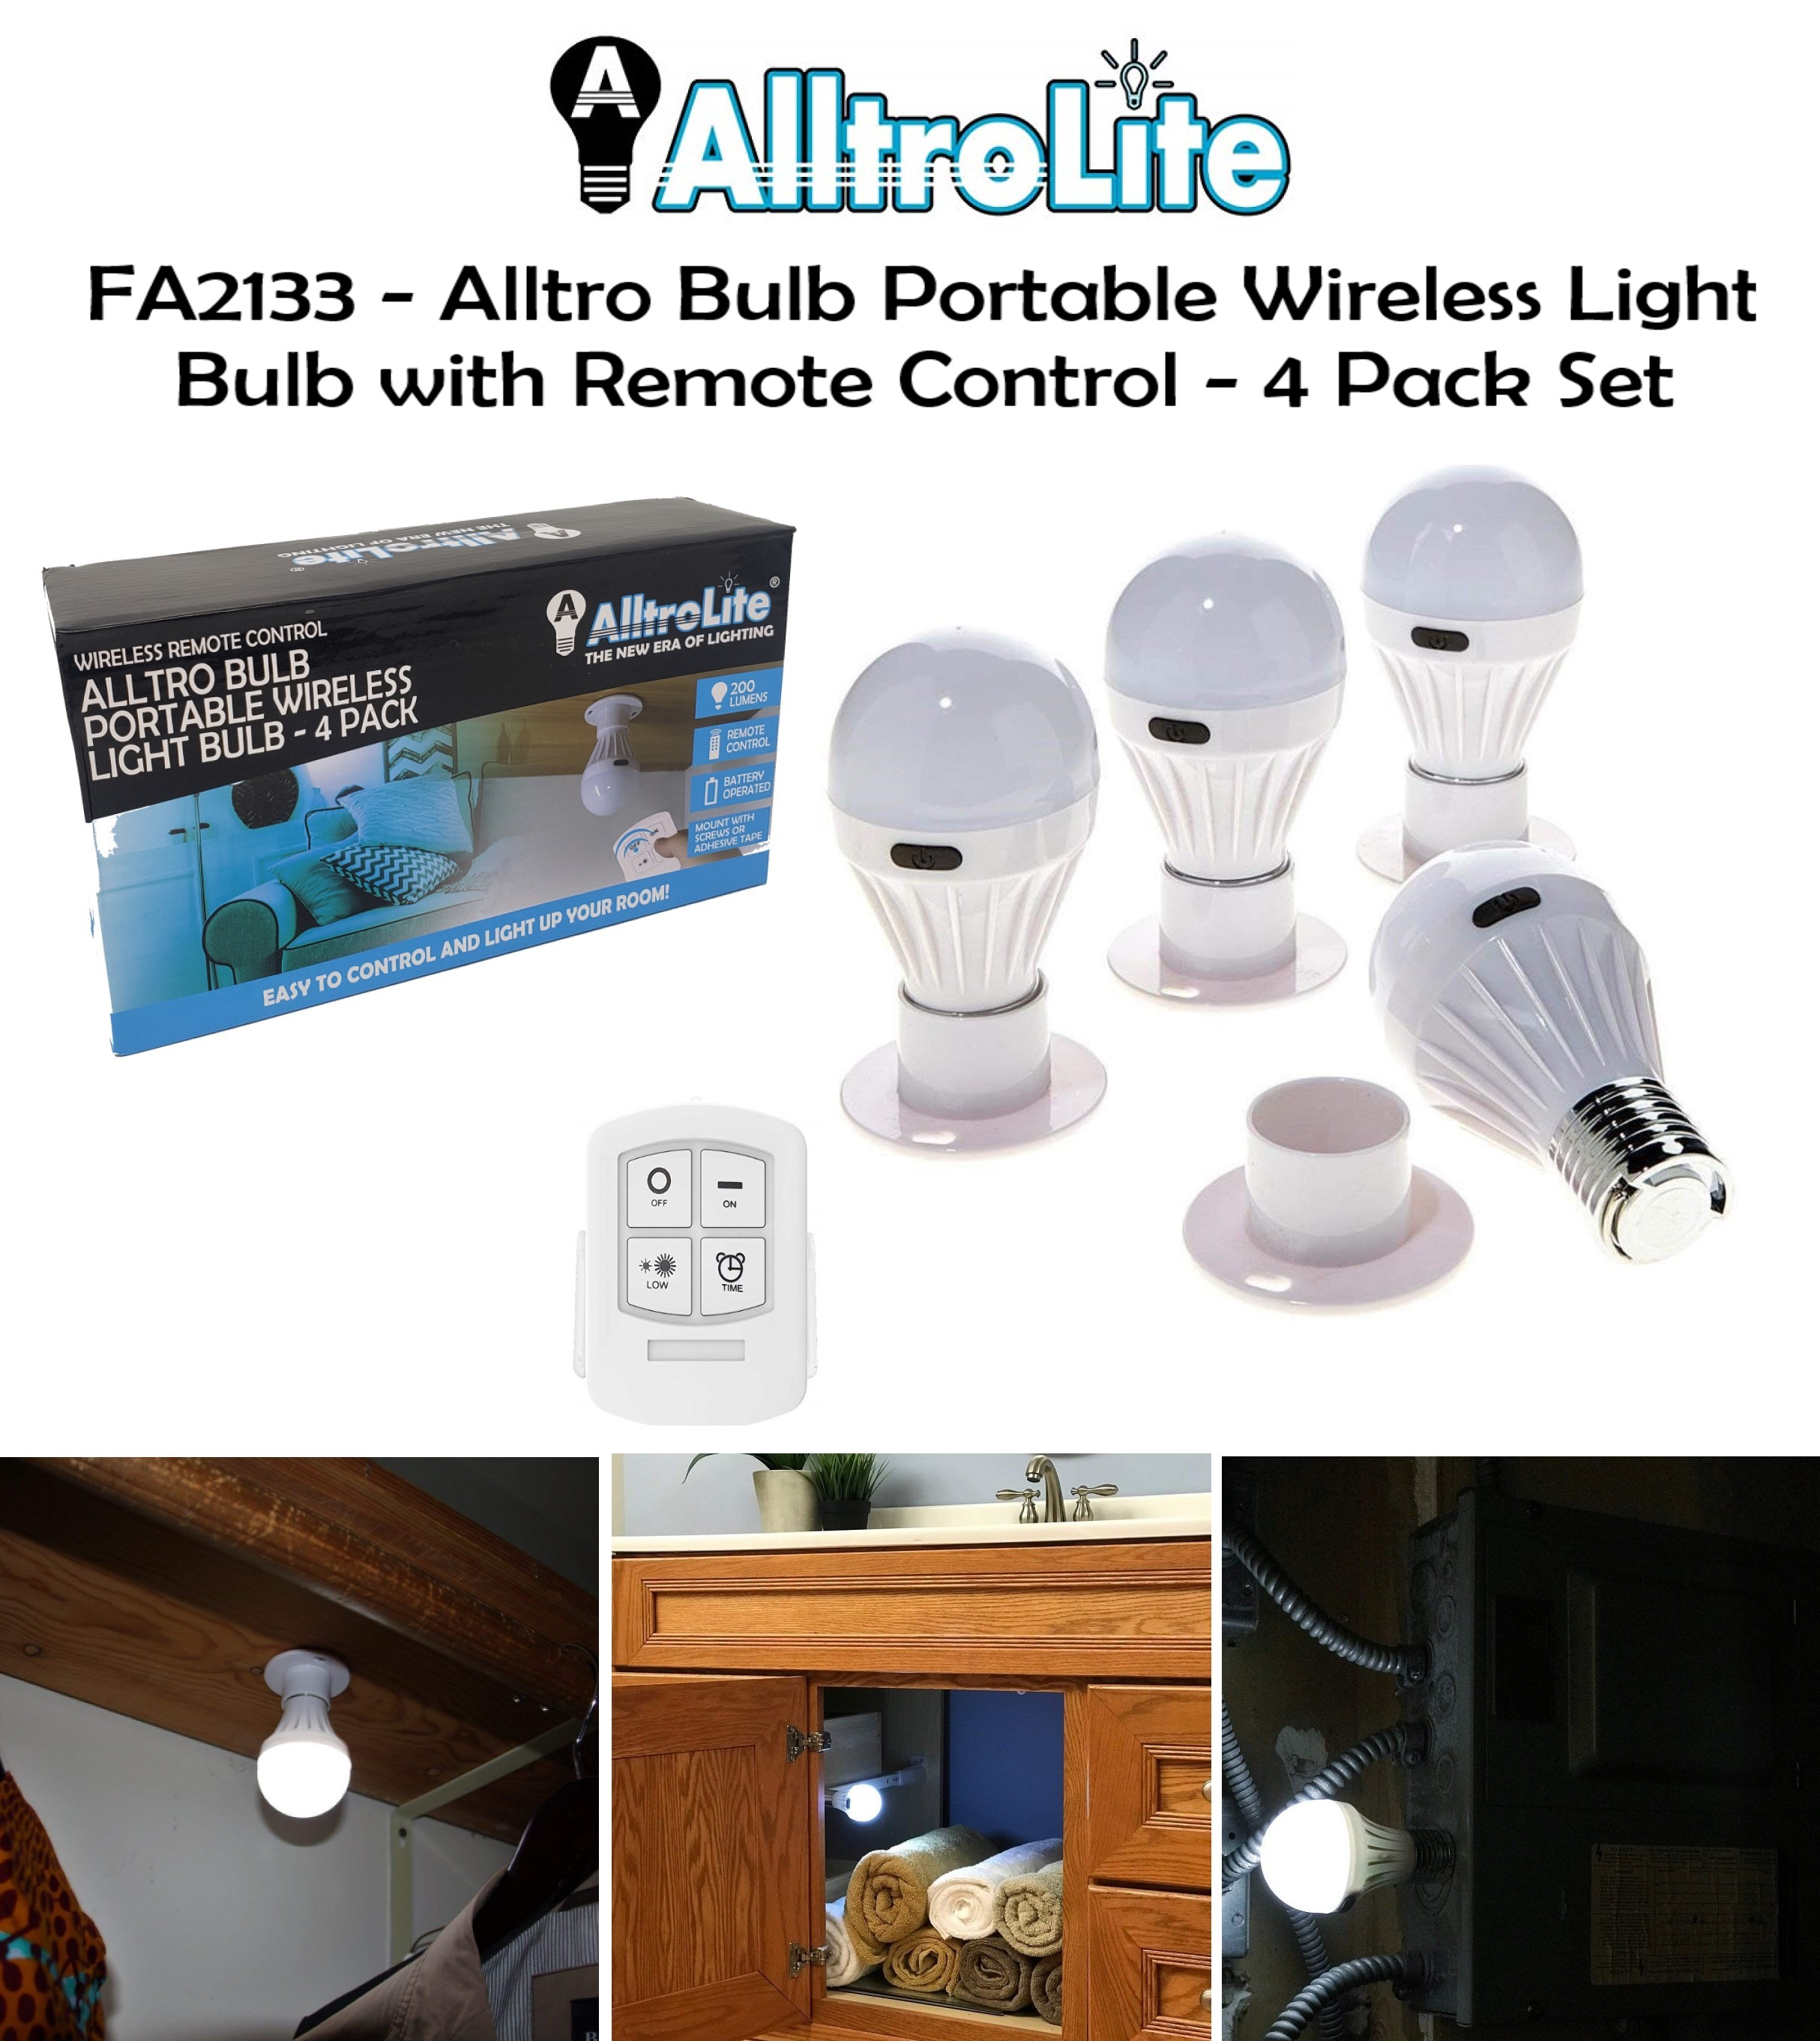 4 Pack Wireles Remote Light Bulb (FA2133)